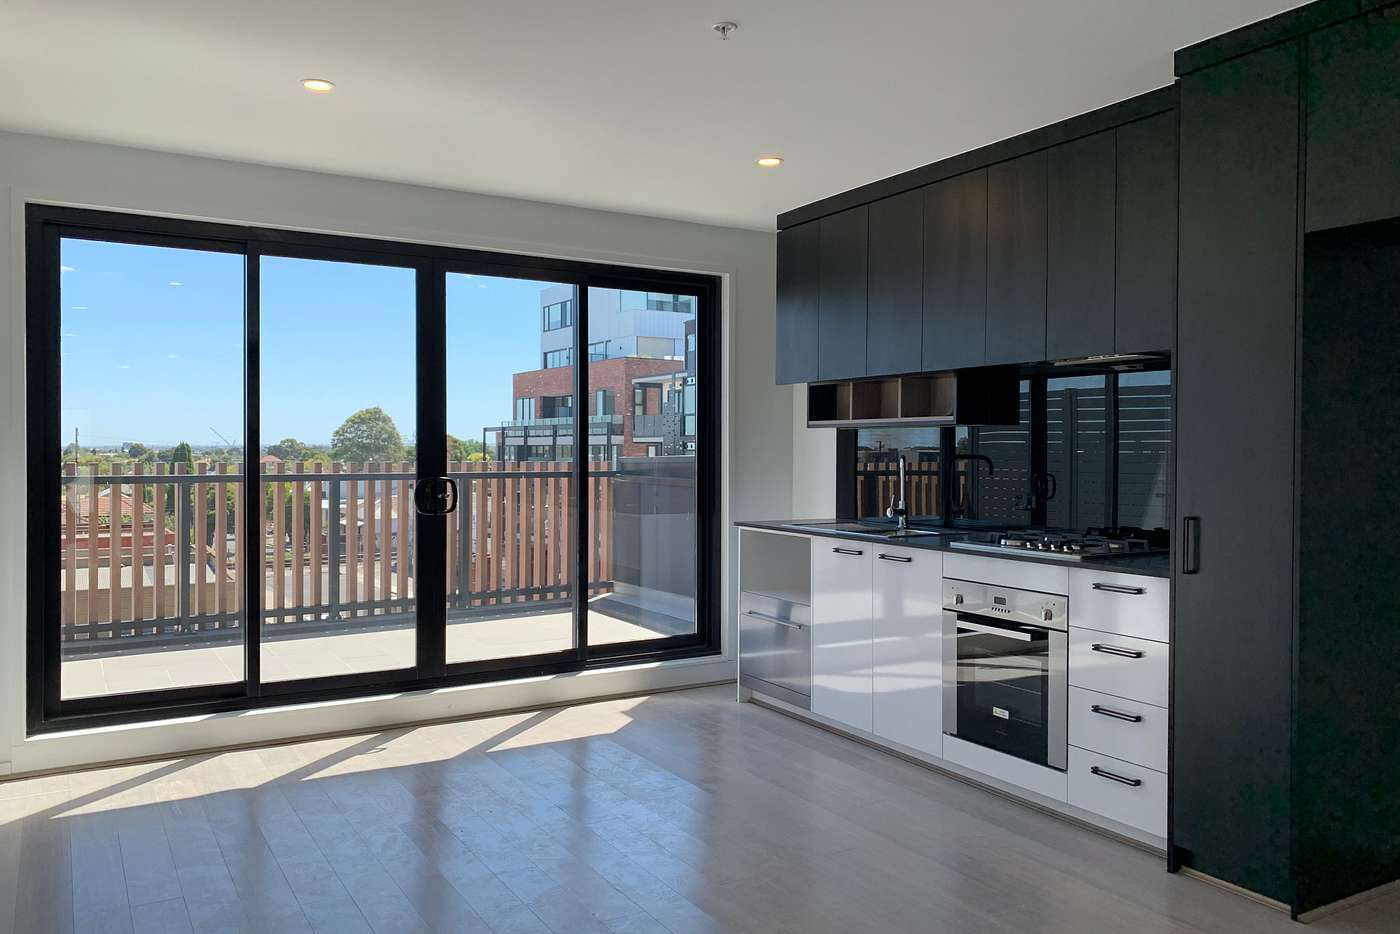 Main view of Homely apartment listing, 301/4 Breese Street, Brunswick VIC 3056